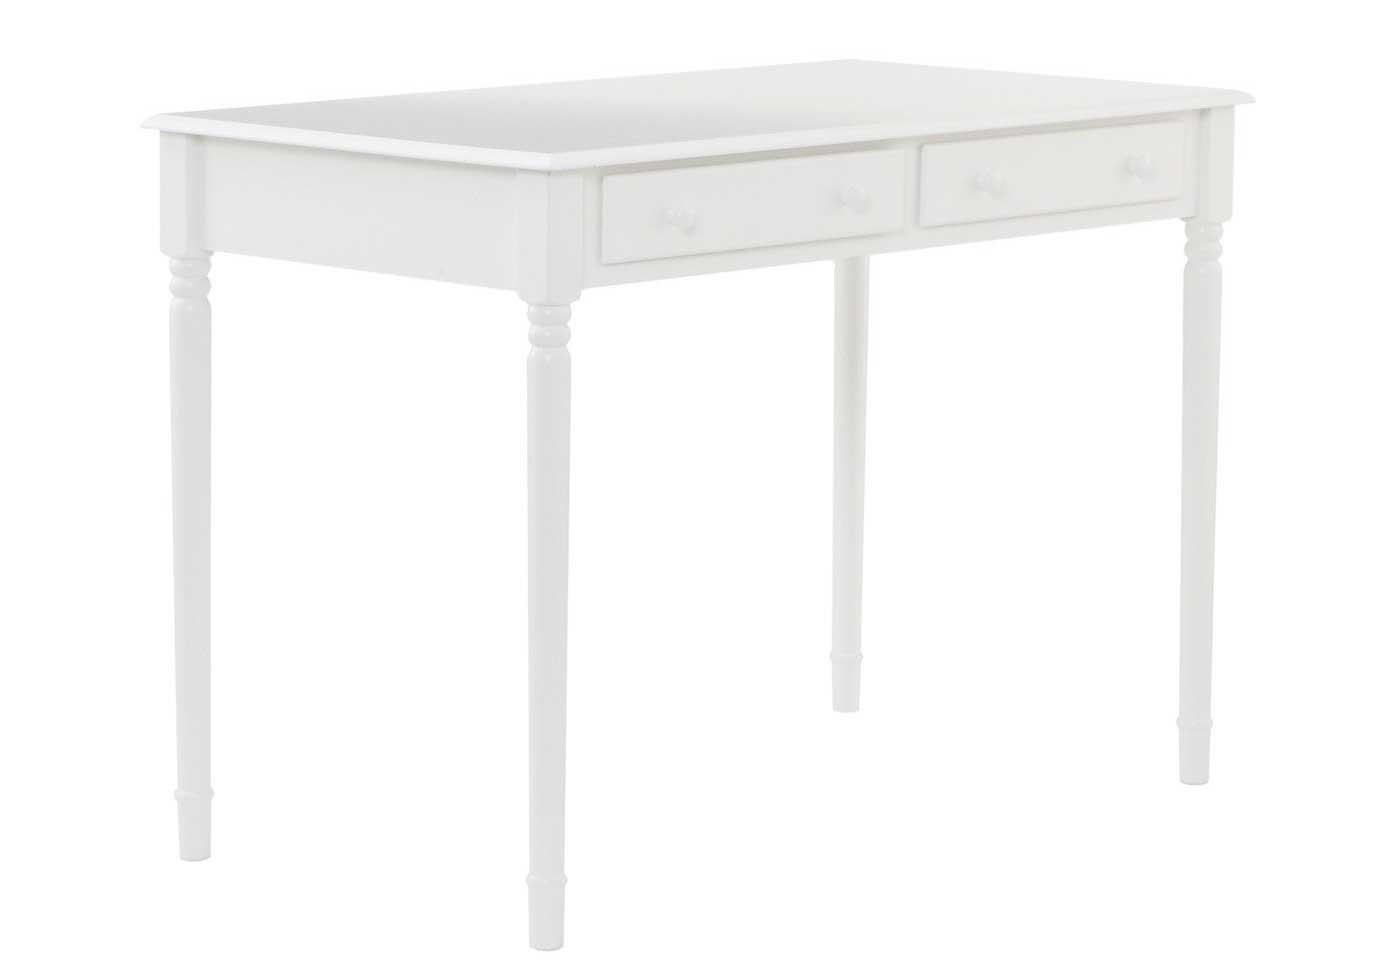 SEI crisp white wood desks with 2 drawer